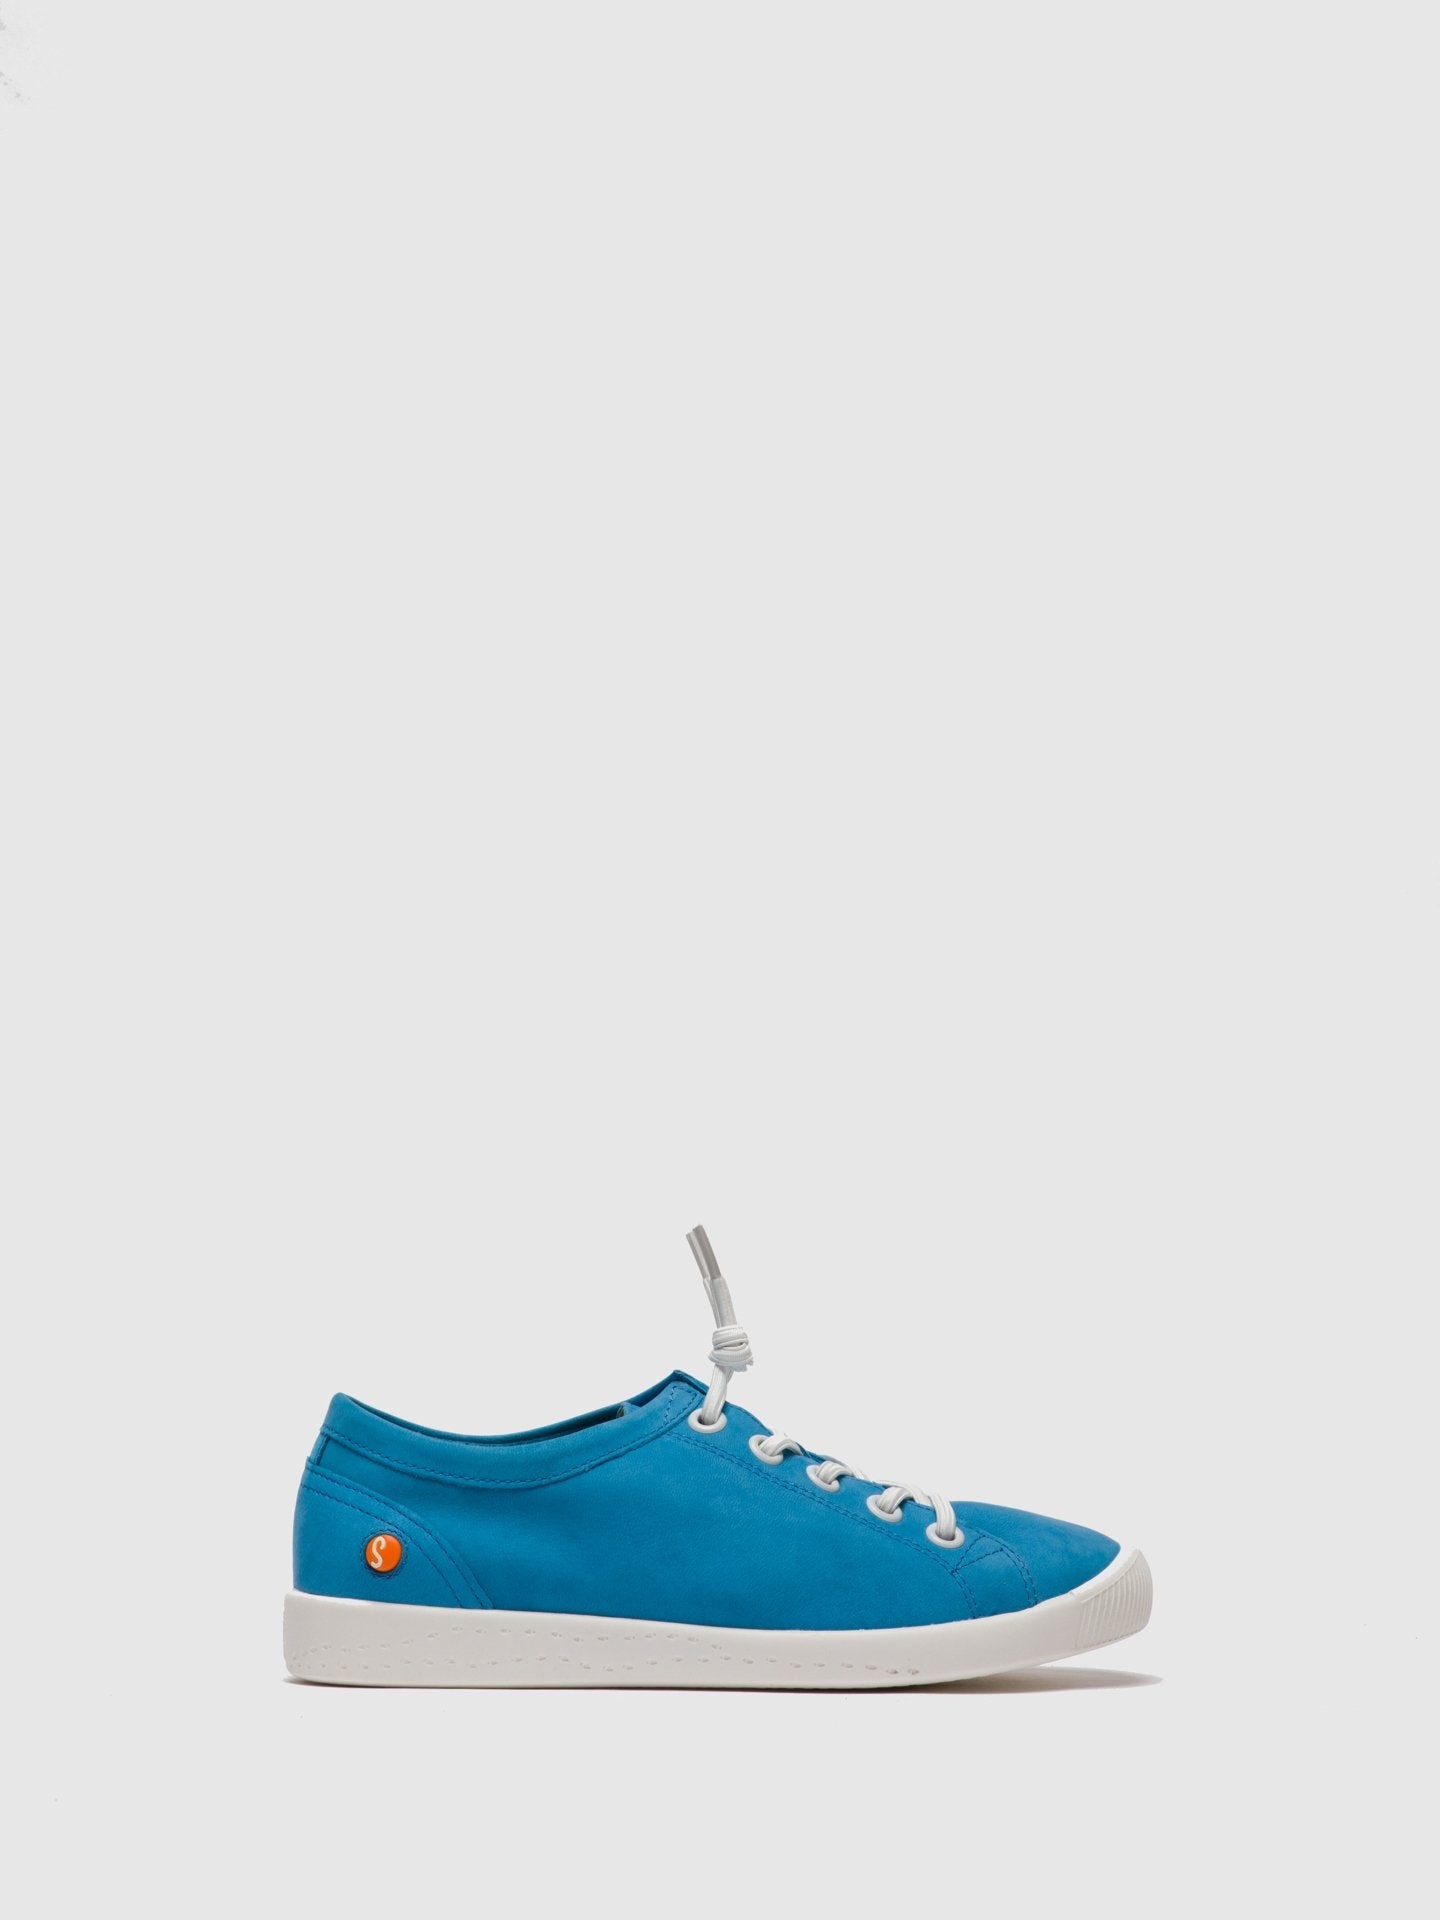 Softinos Lace-up Shoes ISLAII557SOF Royal Blue